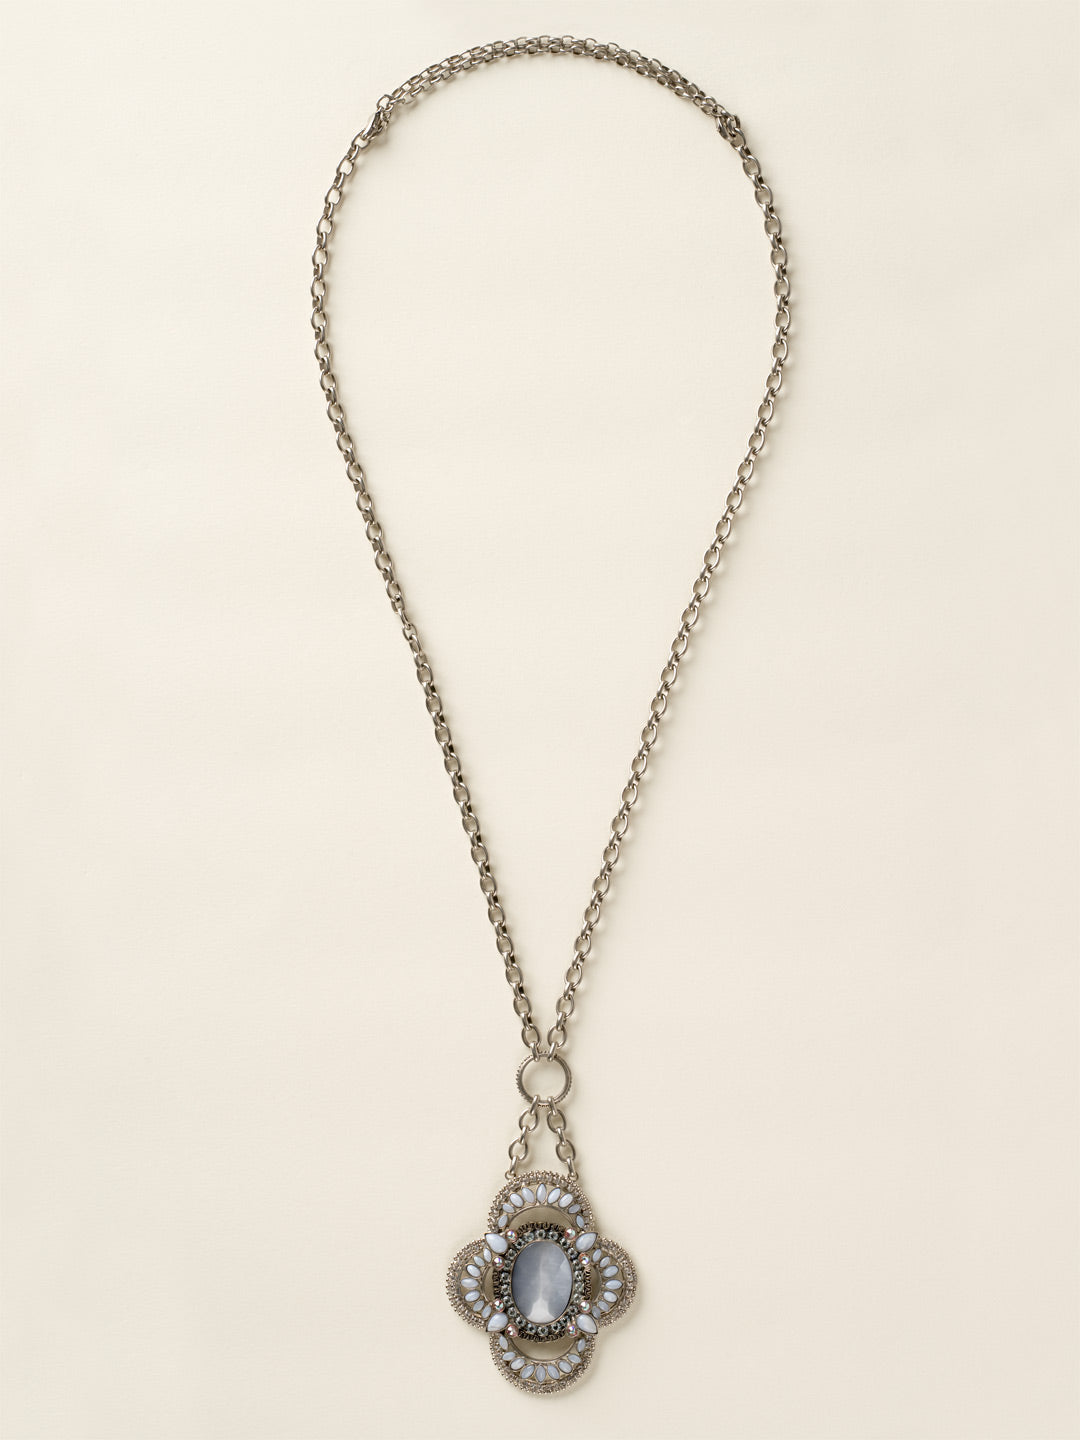 Crystal and Cabochon Medallion Necklace - NCY17ASSEA